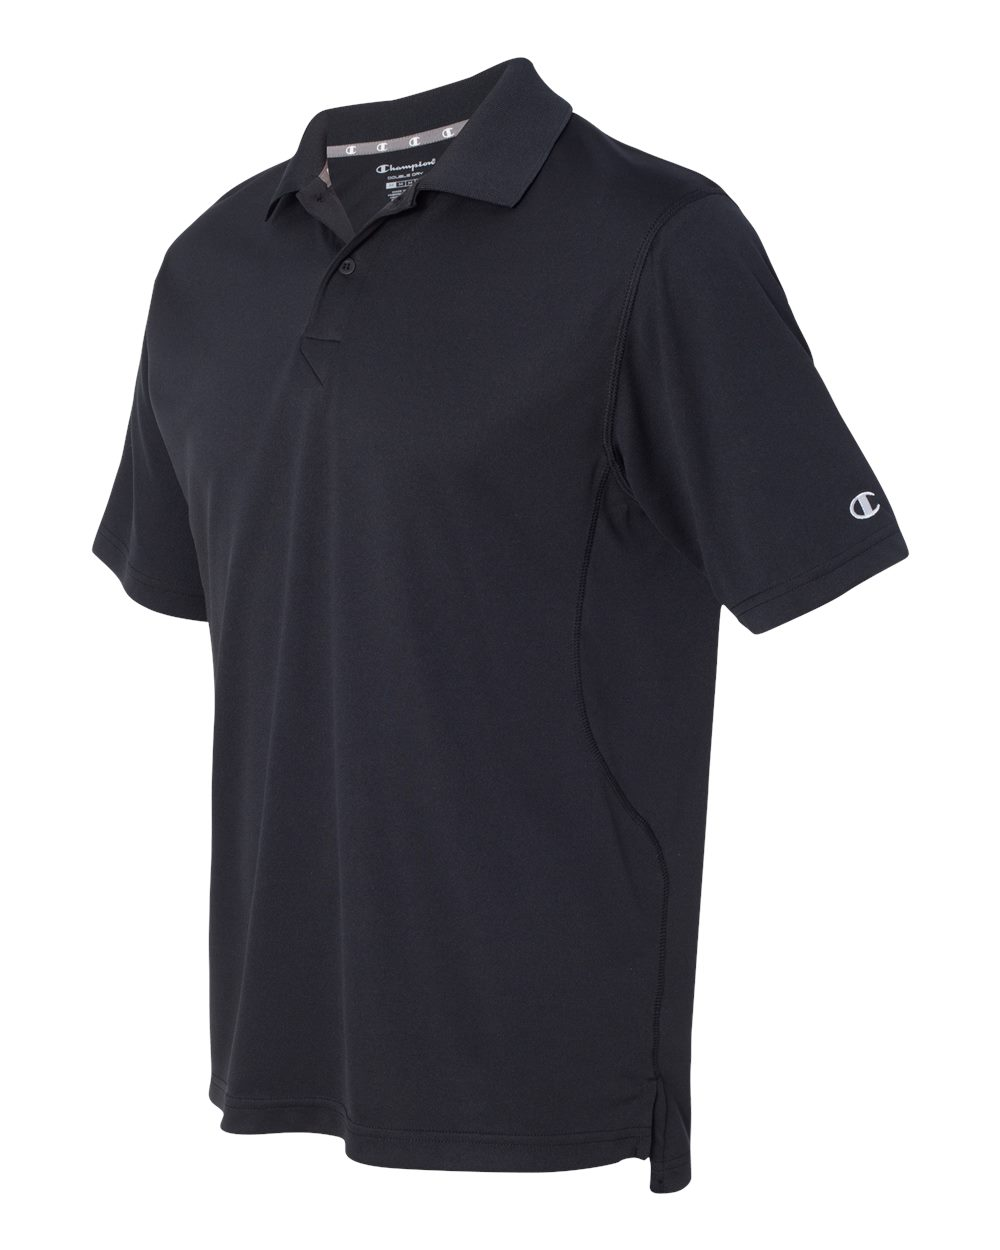 Champion H131 - Ultimate Double Dry Performance Sport Shirt